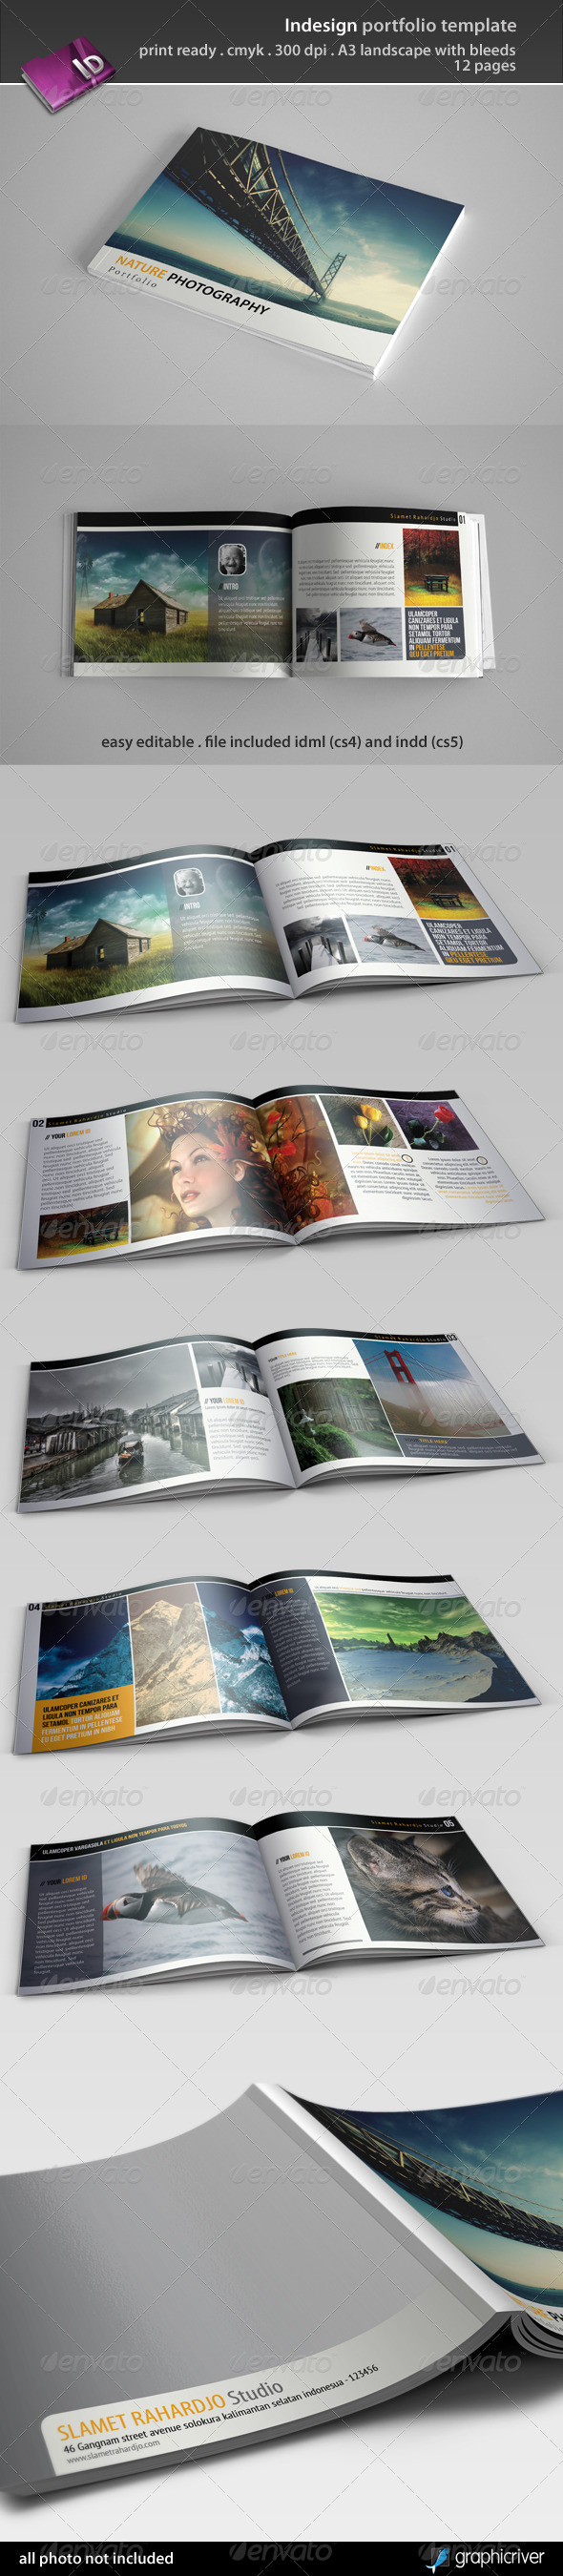 GraphicRiver Indesign Portfolio Template 3435643